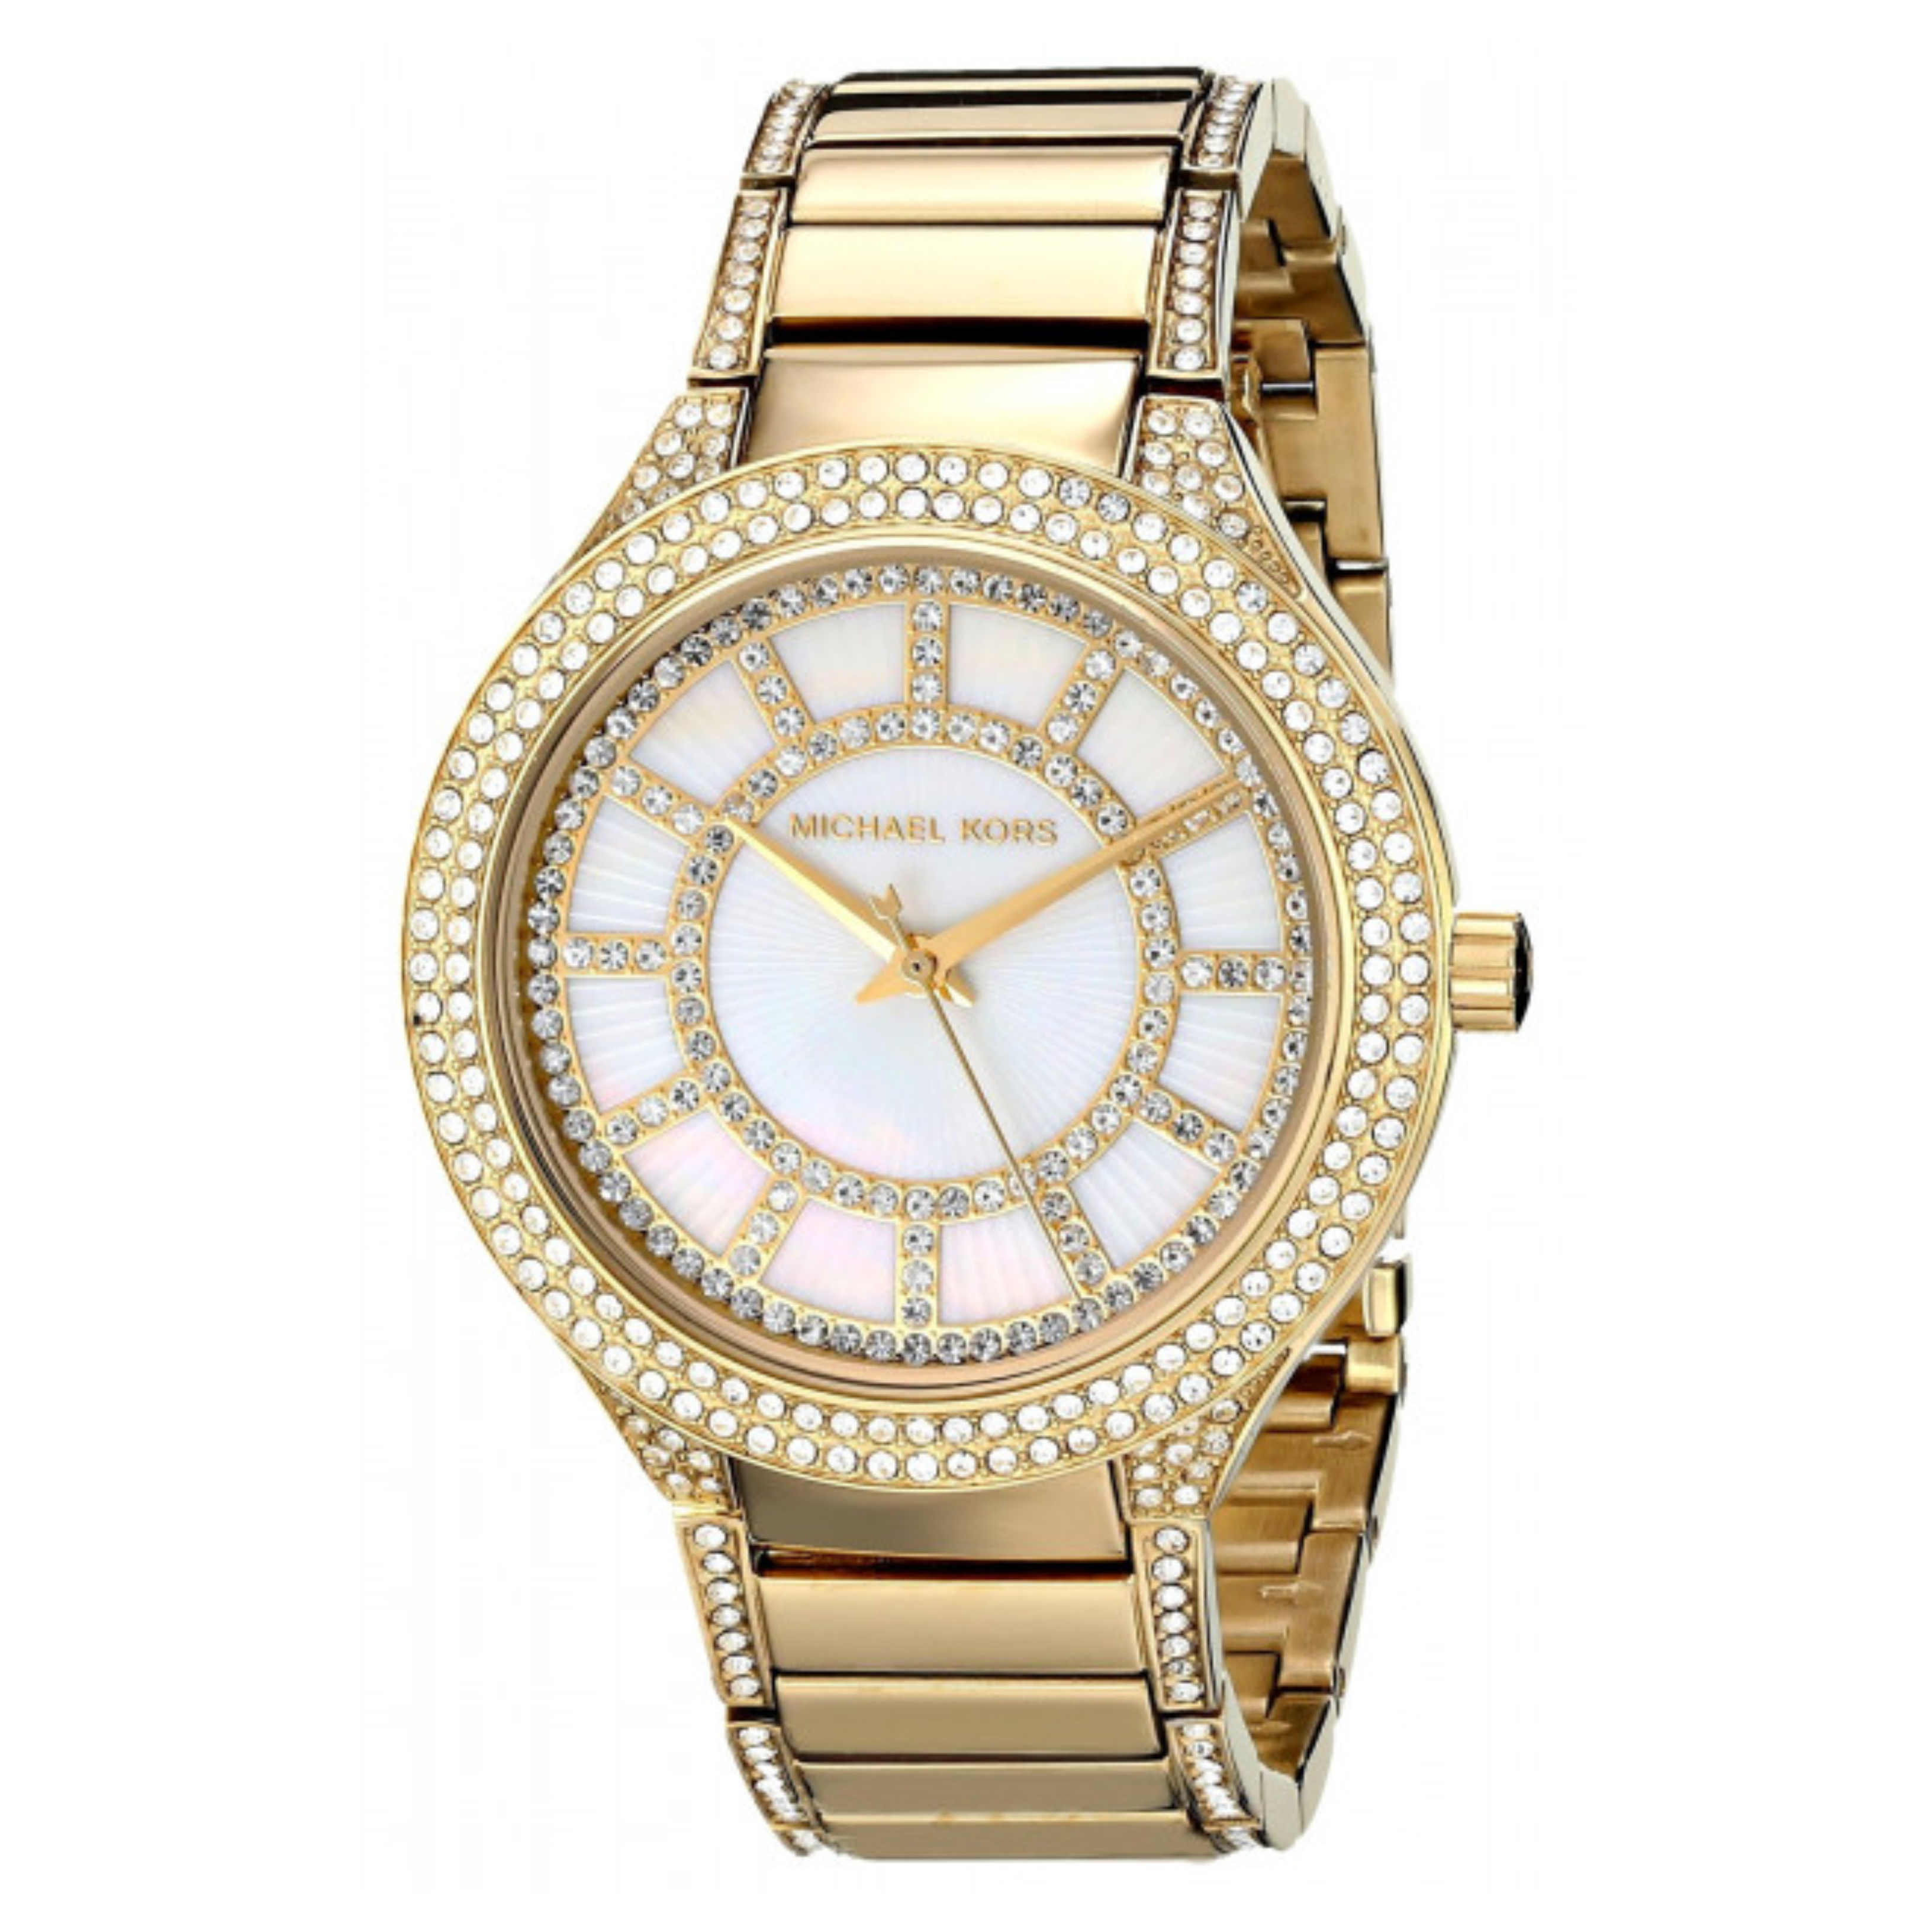 Michael Kors Kerry Mother of Pearl Crystal Dial Gold Tone Ladies Watch MK3312